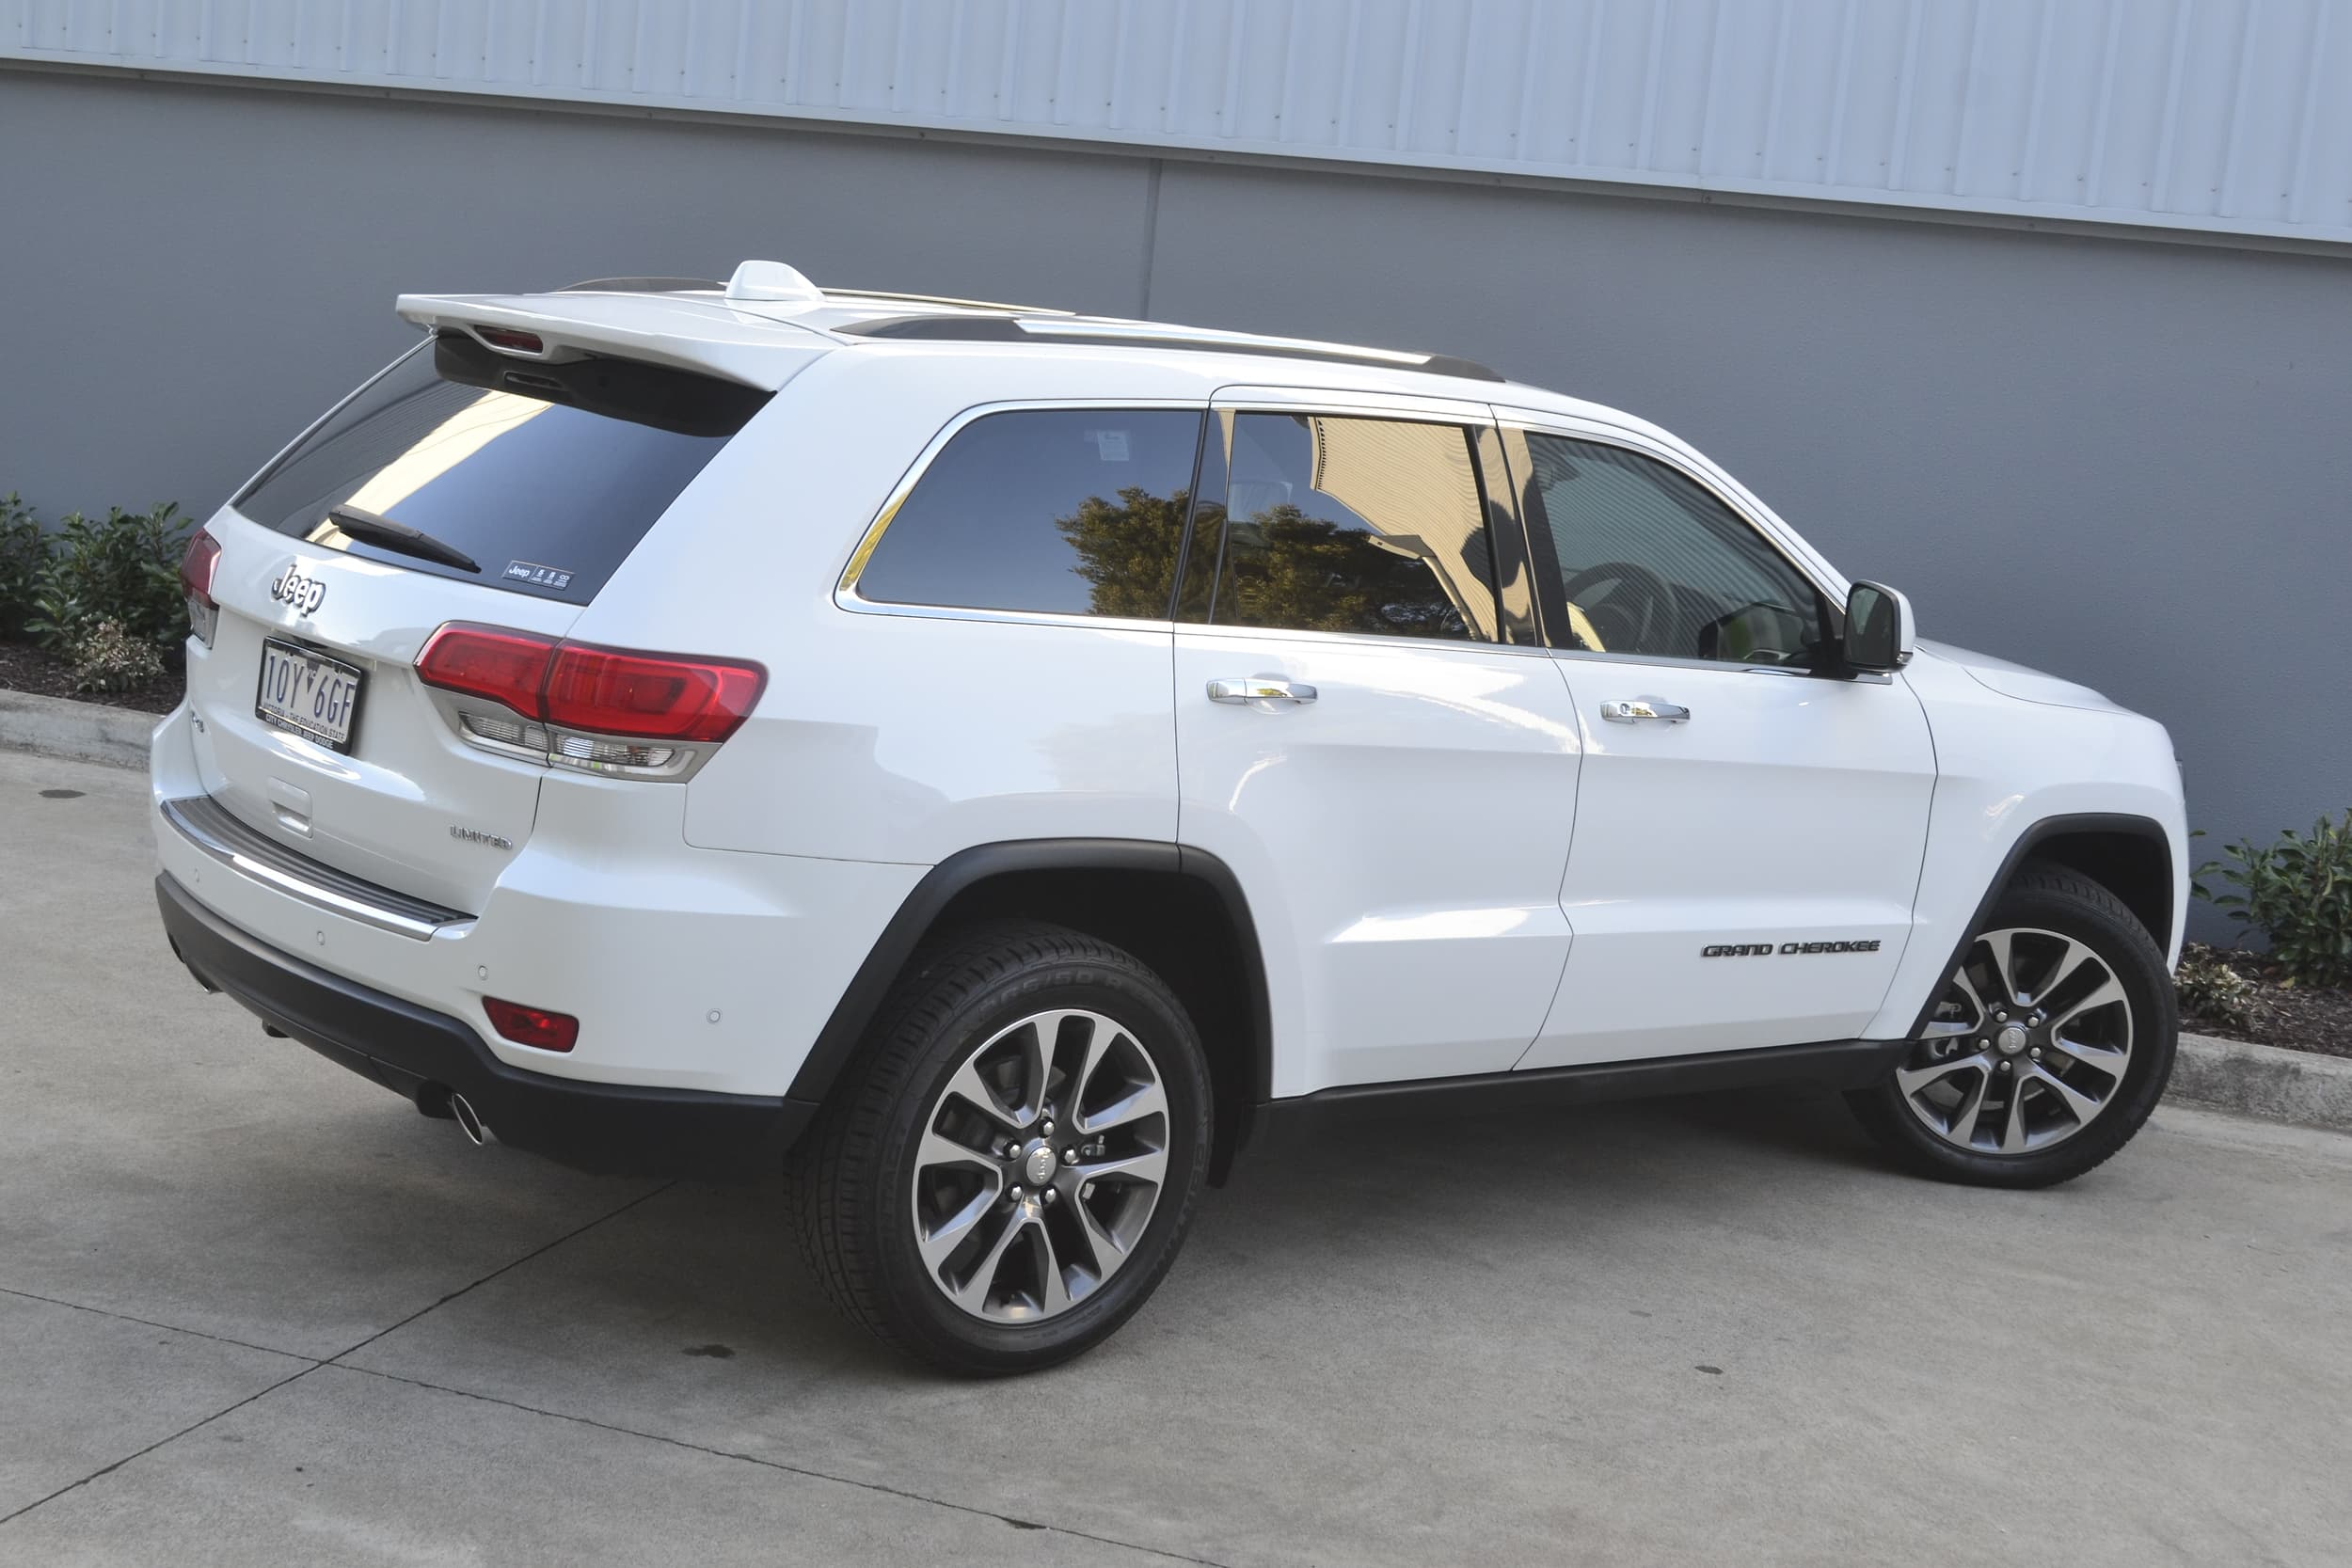 2019 Jeep Grand Cherokee Limited Auto 4x4 MY19 - image 25